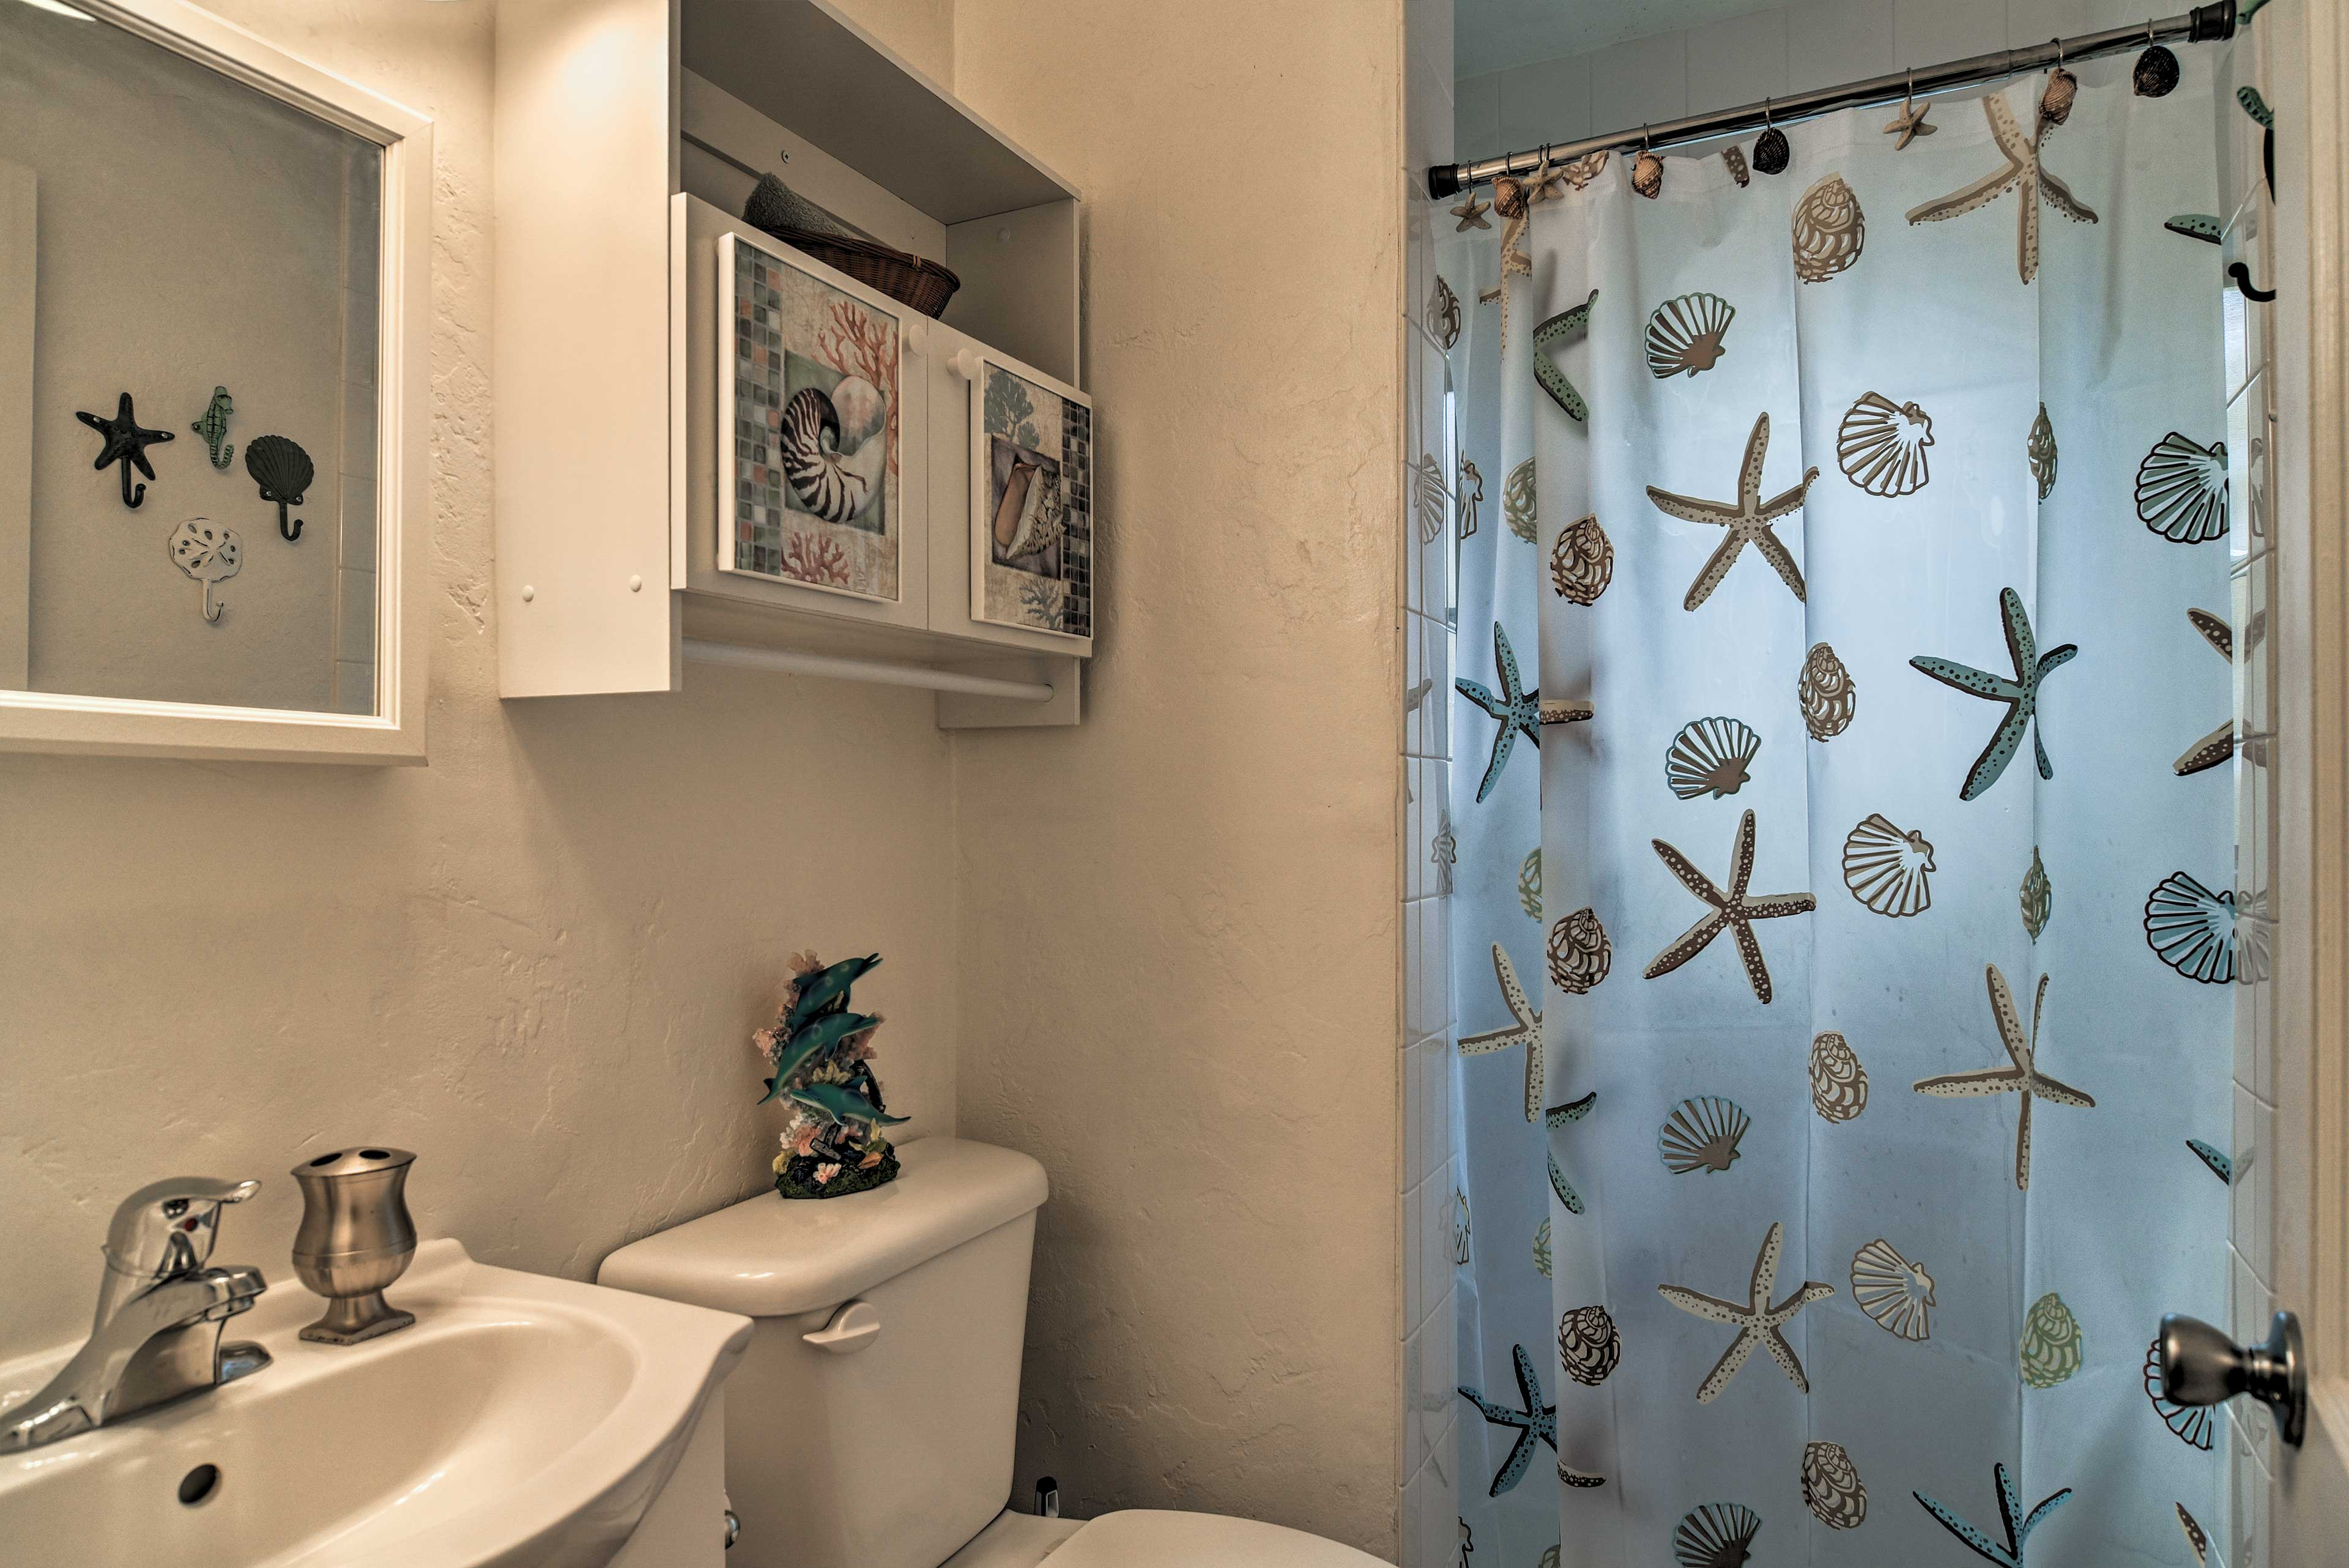 Wash away the sand from the day in the home's full bathroom.